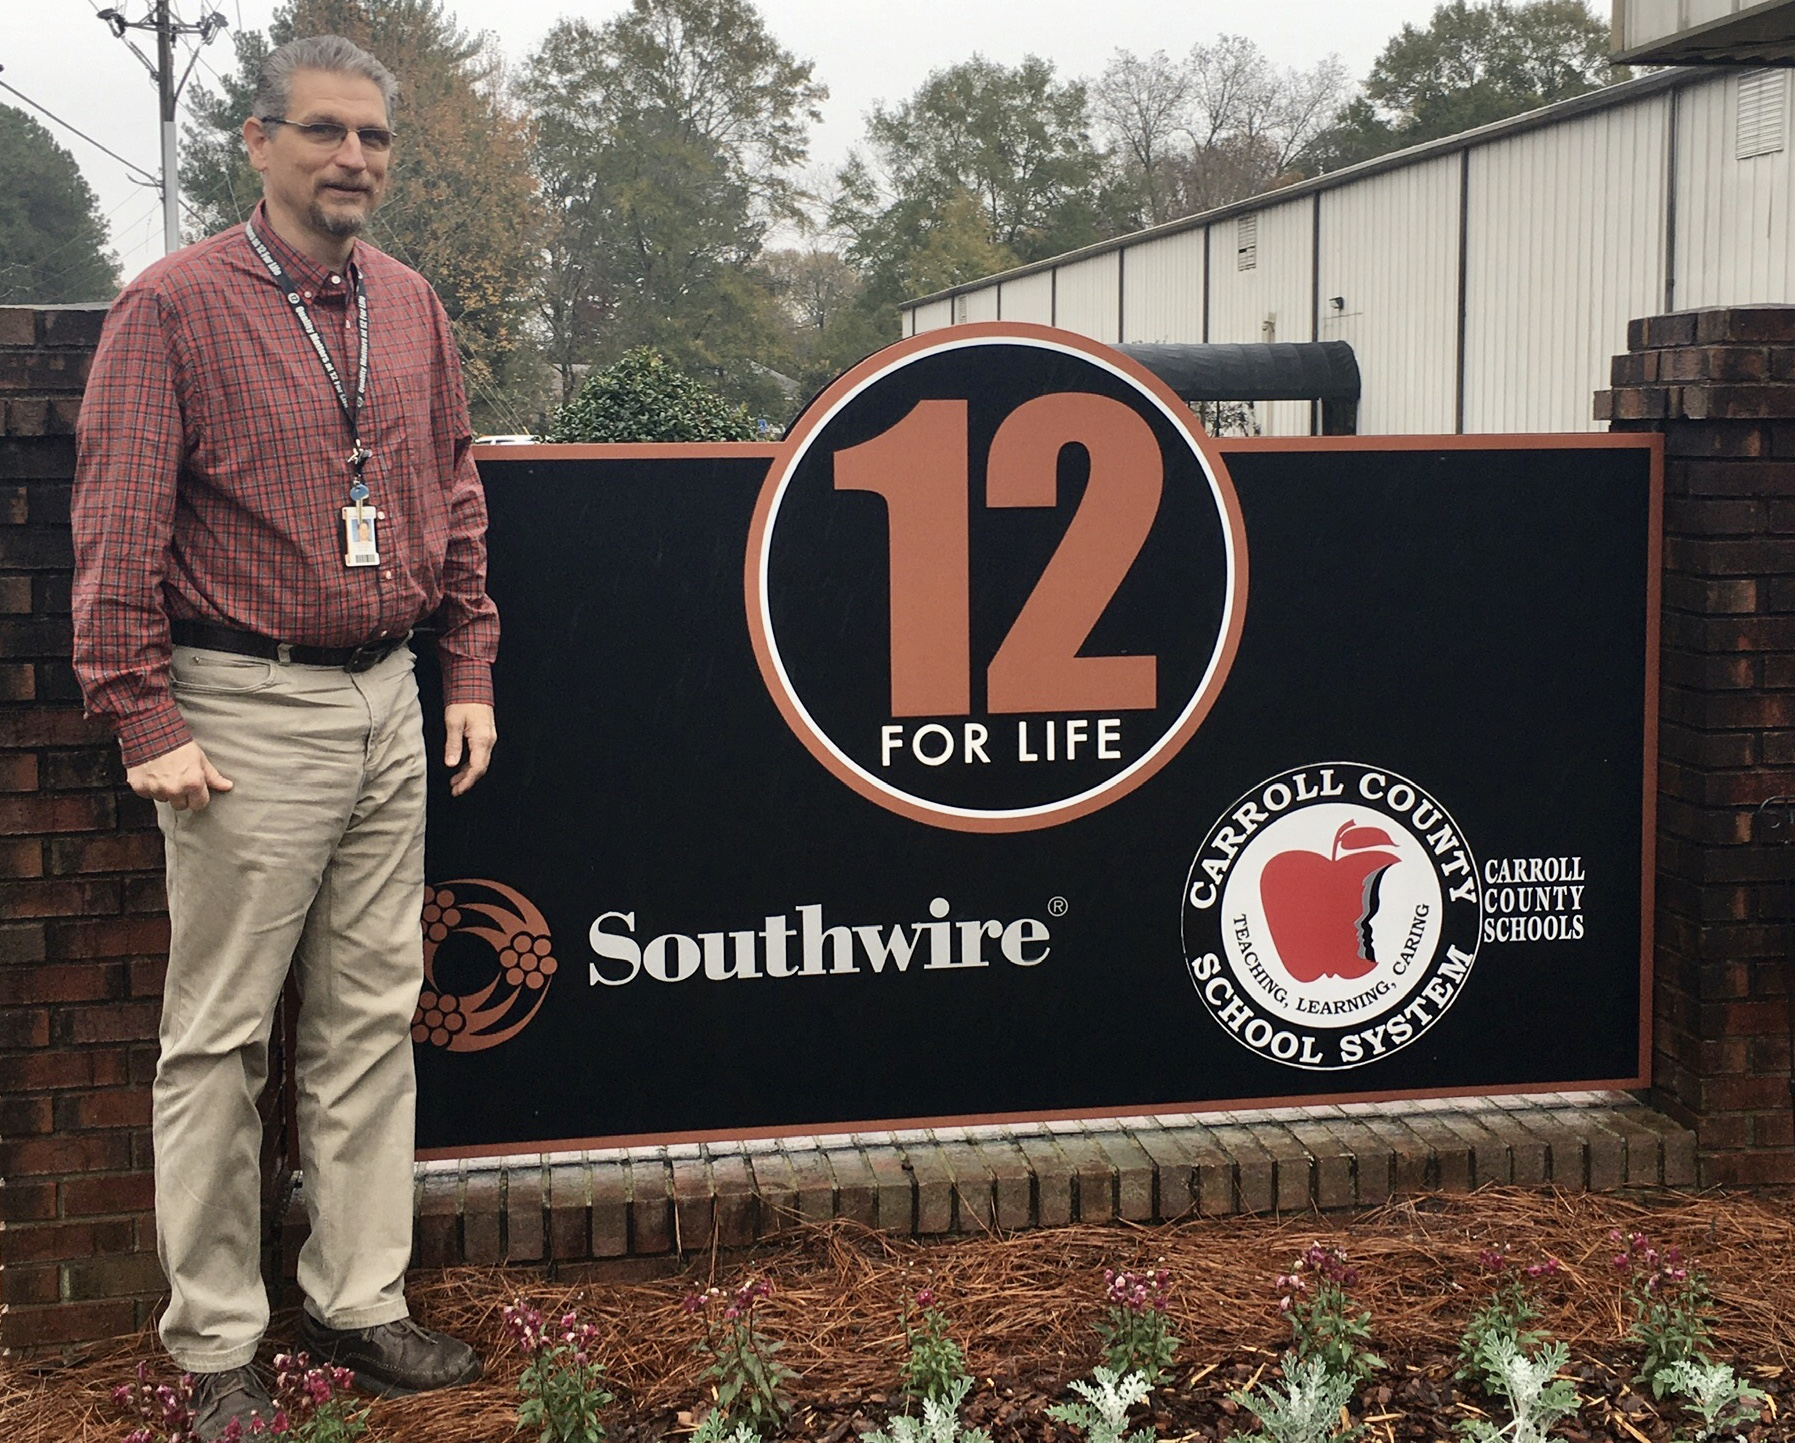 Joel Grubbs standing in front of the 12 for Life program sign outside the facility